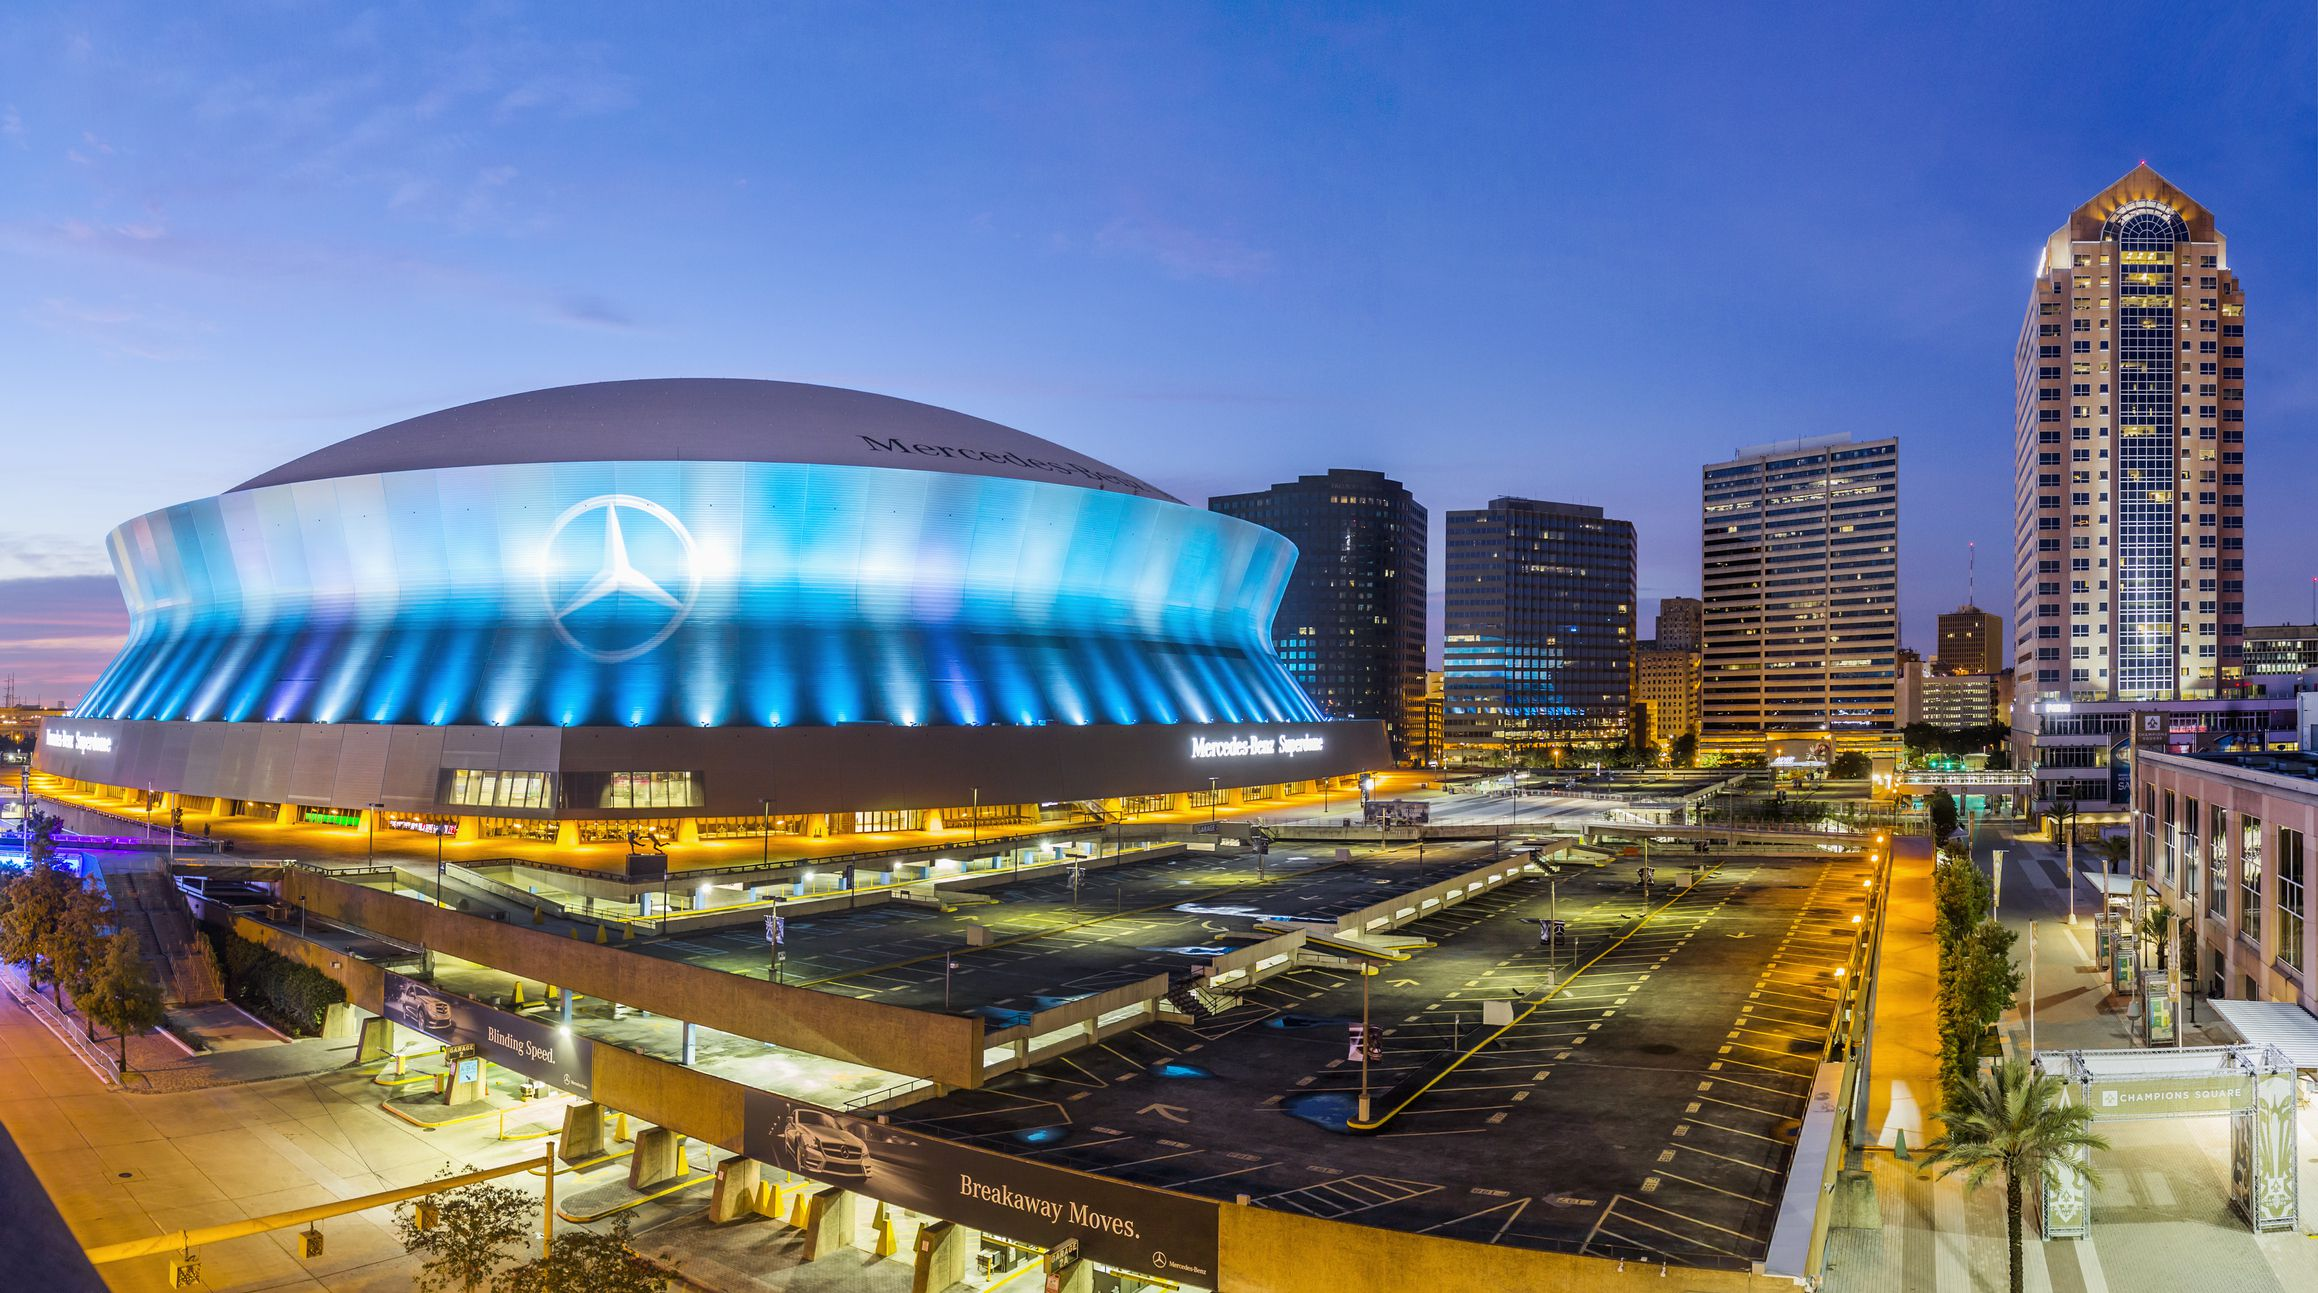 Best restaurants near the new orleans superdome for Hotels near mercedes benz superdome new orleans la